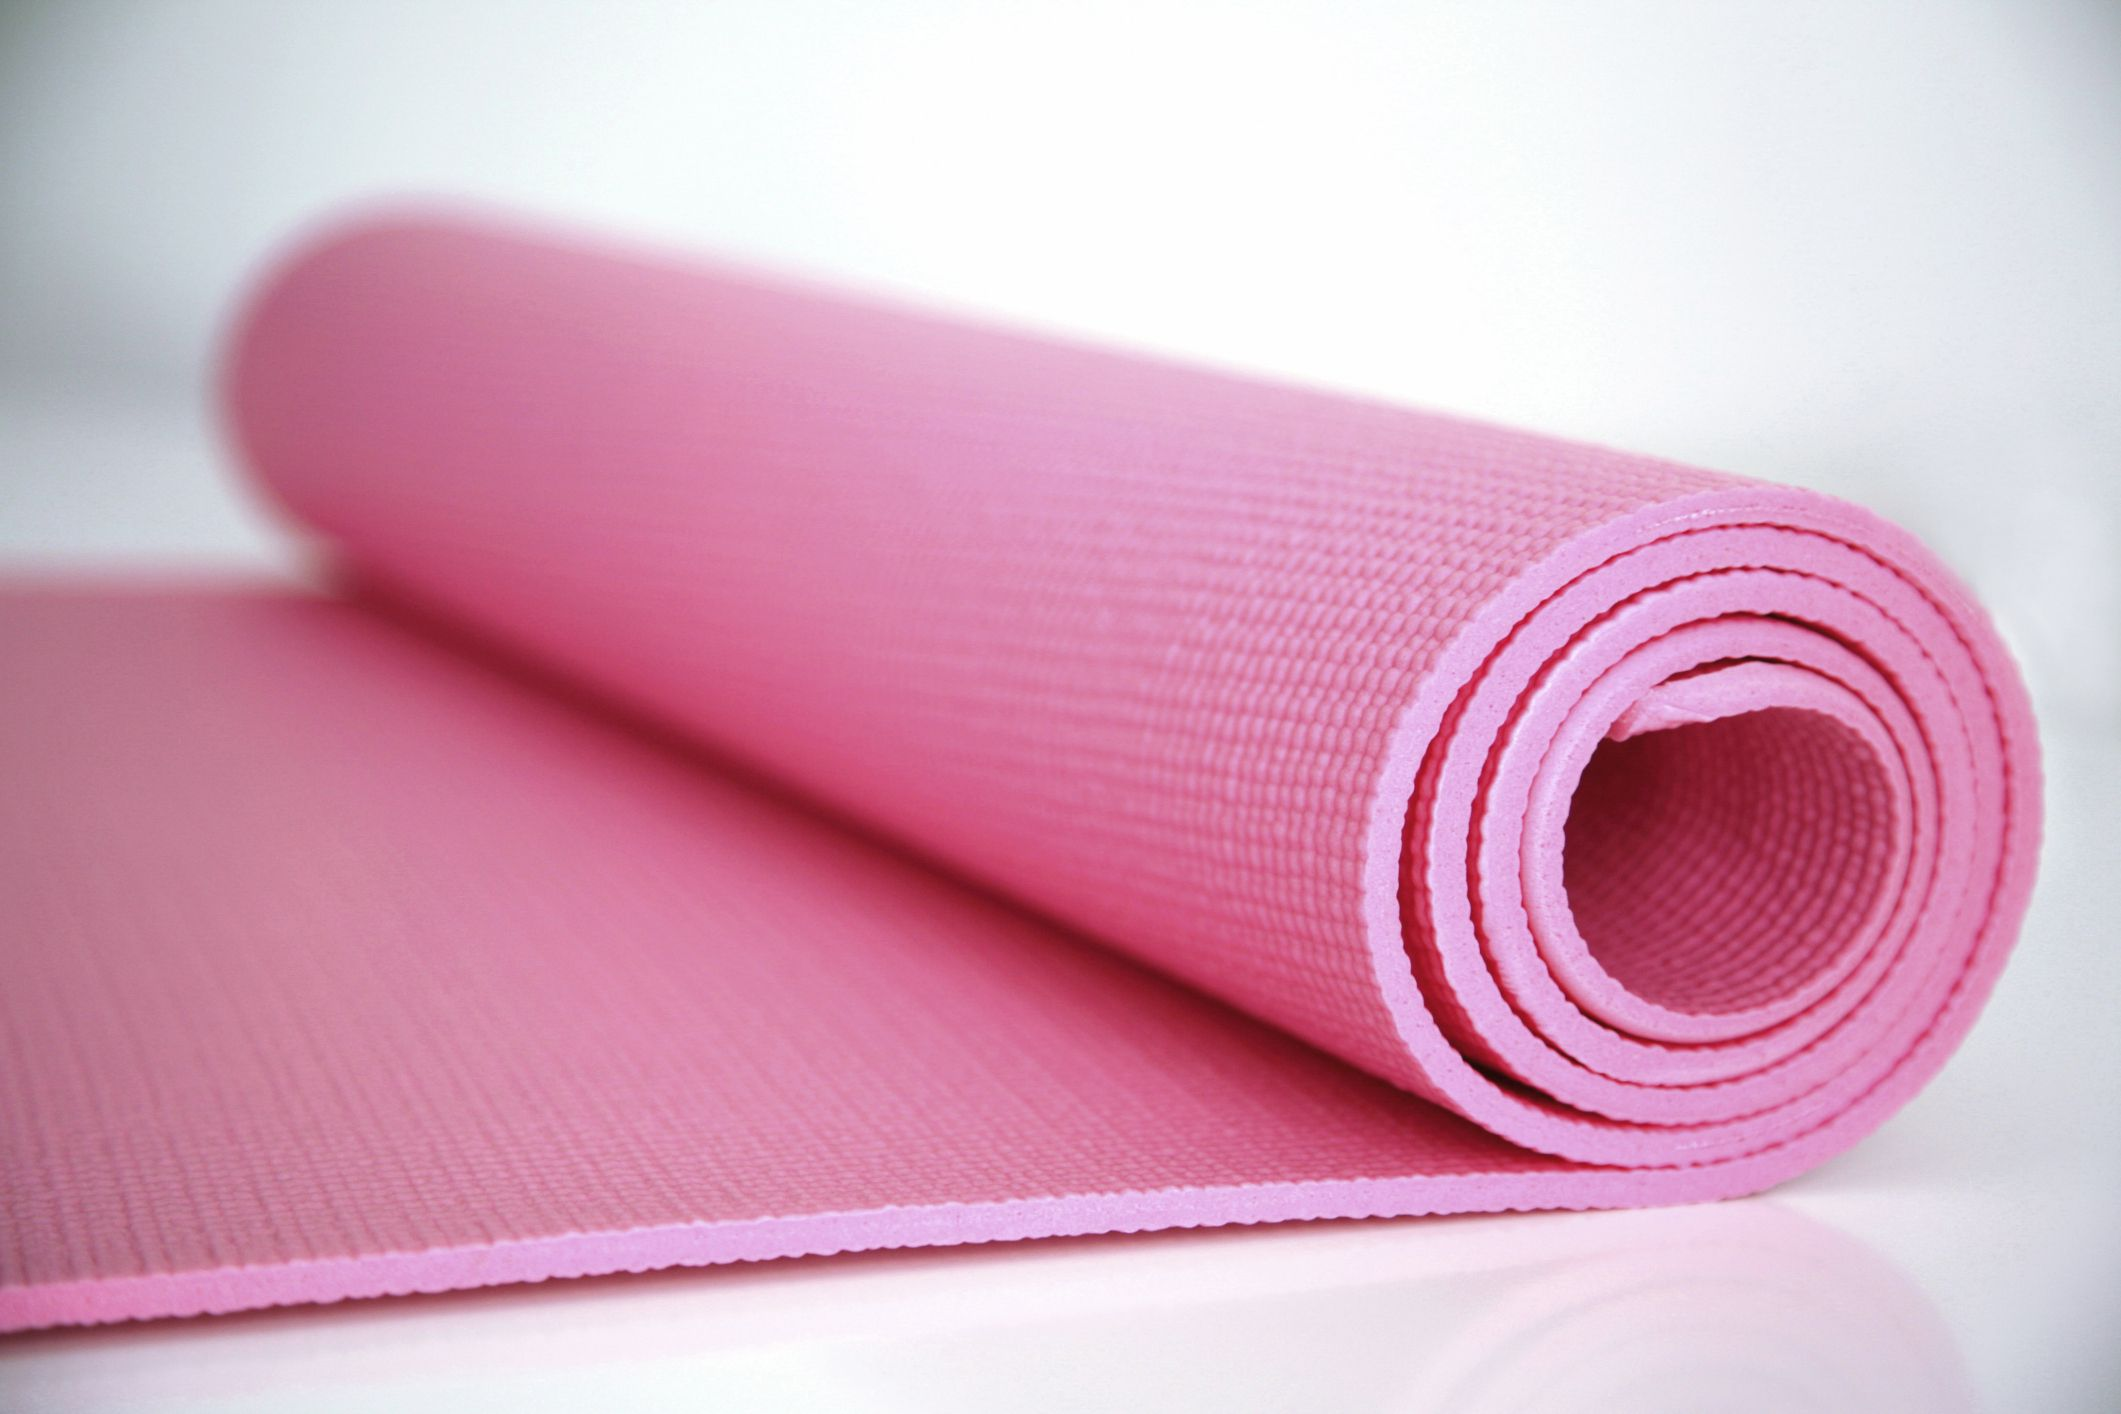 What To Know Before You Buy A Yoga Mat